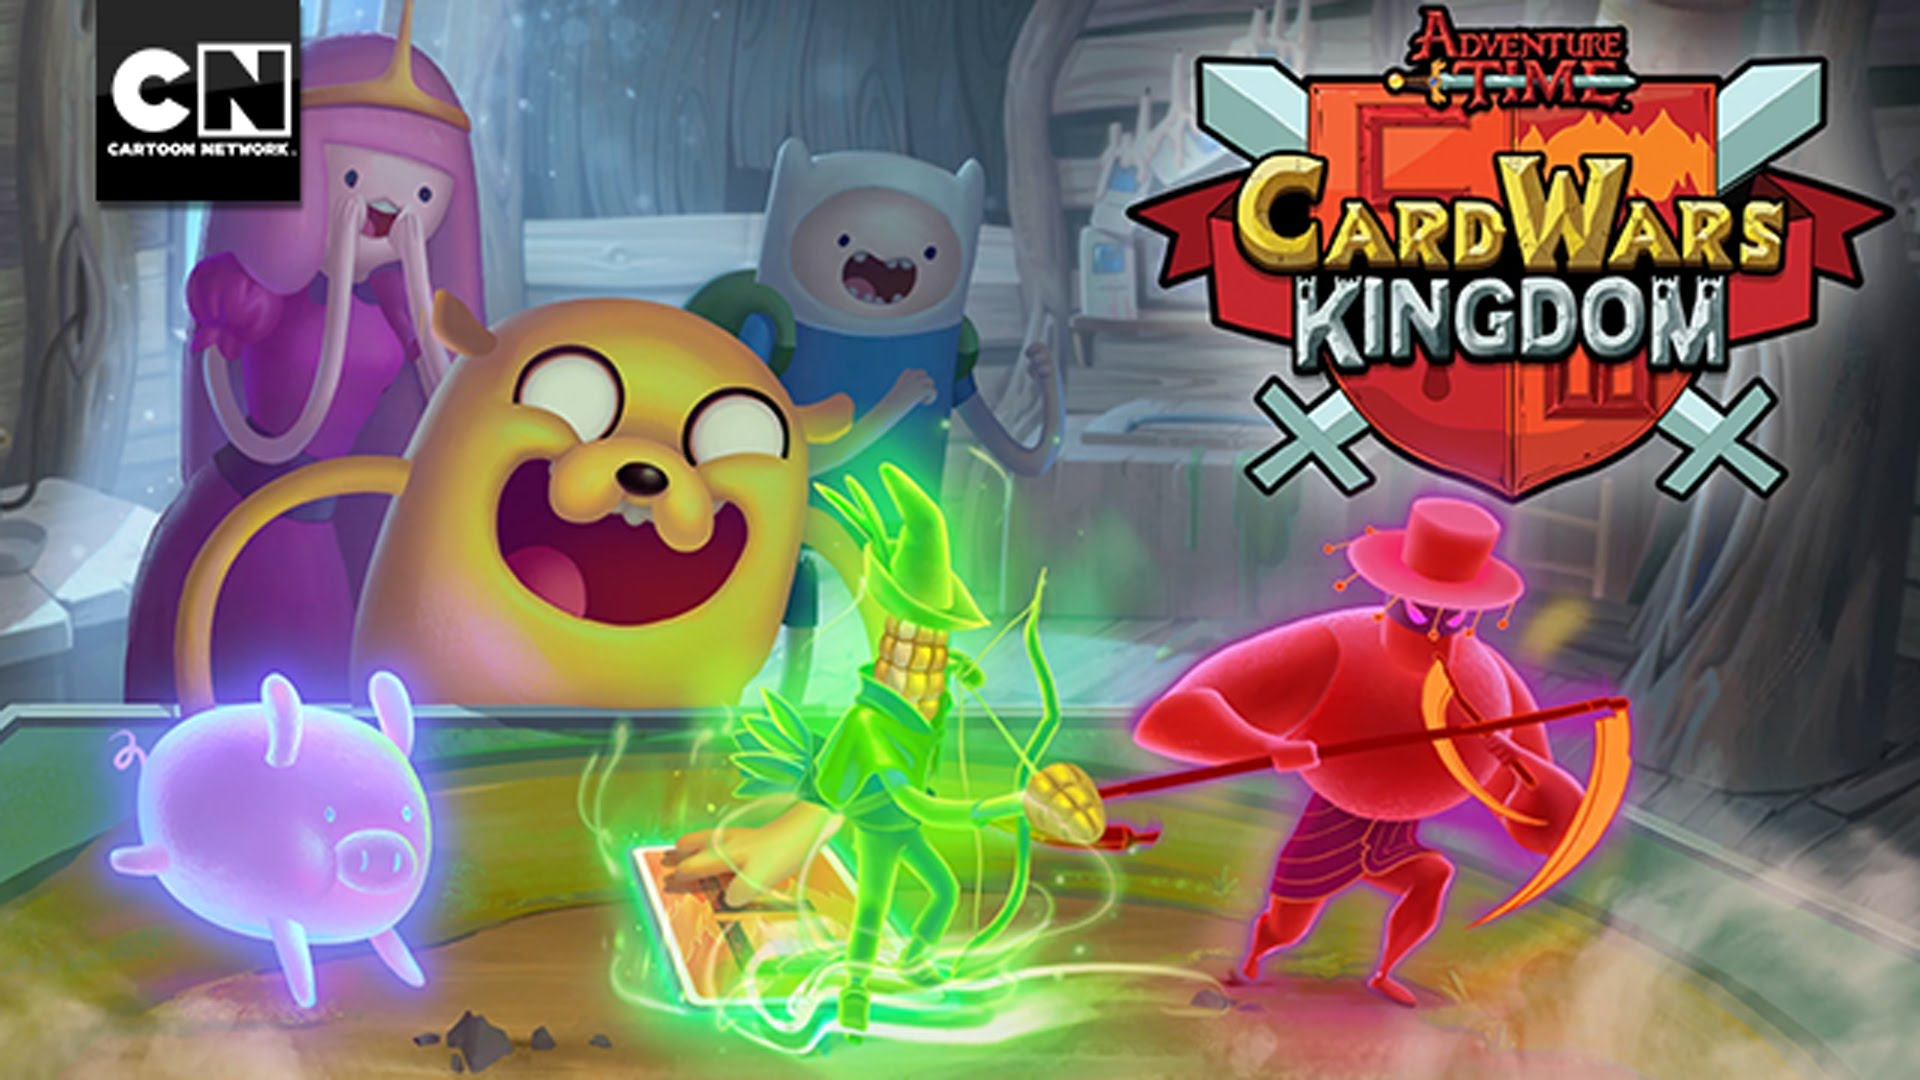 Card Wars Kingdom Astuces Generateur sur Internet